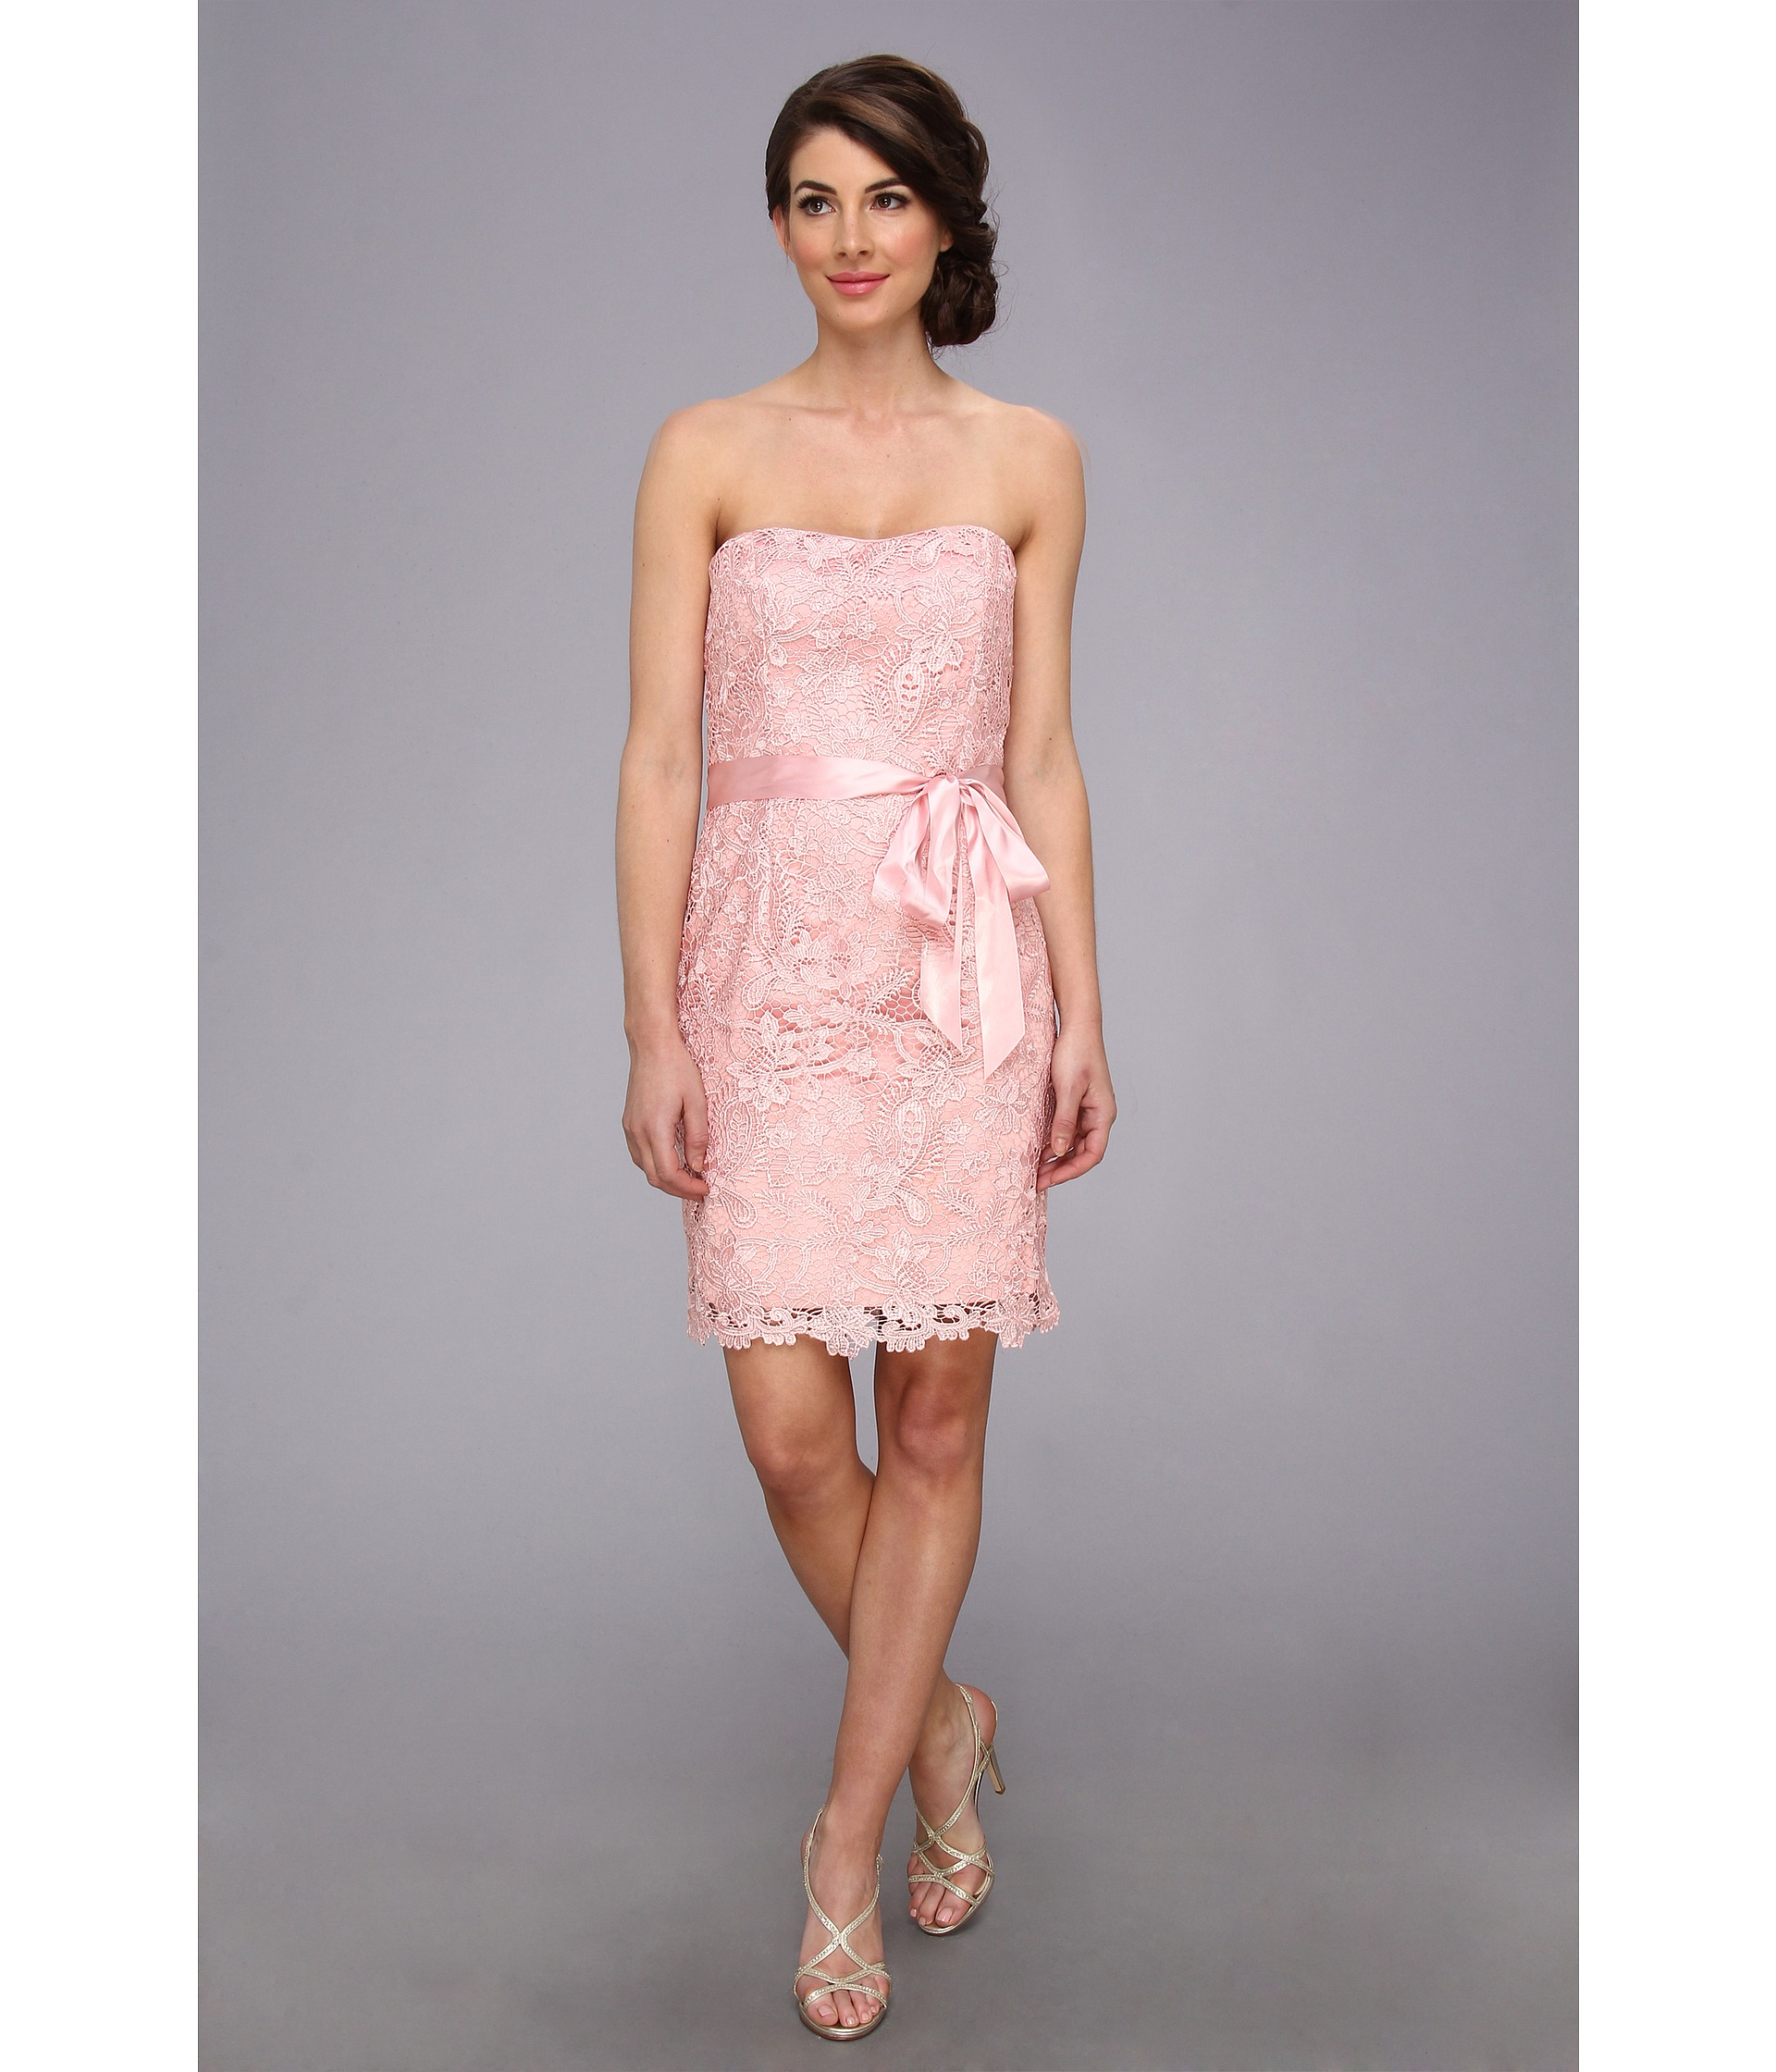 8ba8e8b4 Gallery. Previously sold at: Zappos · Women's Bridesmaid Dresses Women's Adrianna  Papell ...